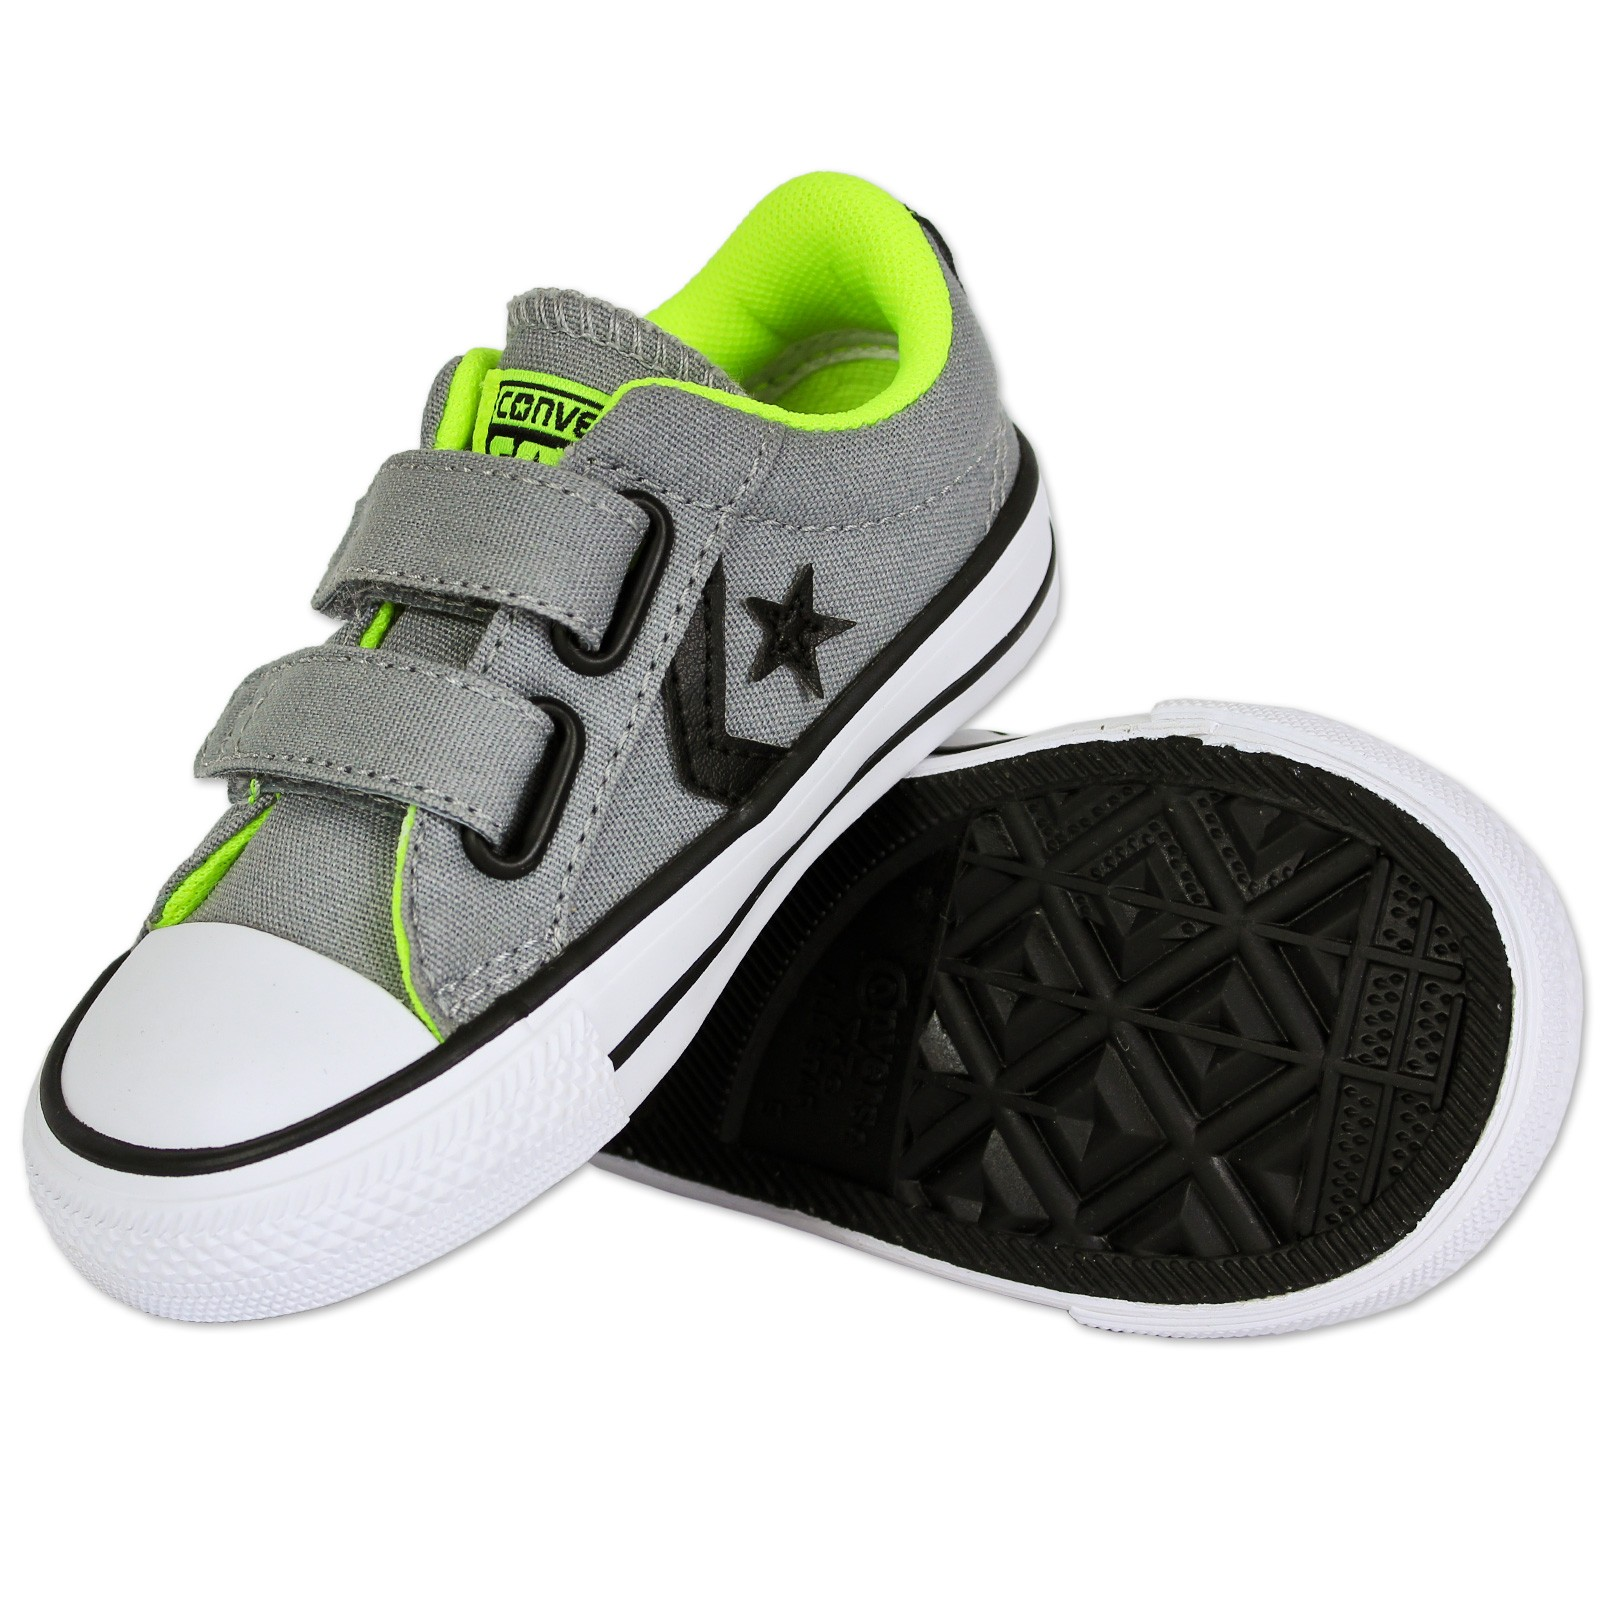 converse all star player chucks taylor kinder baby. Black Bedroom Furniture Sets. Home Design Ideas